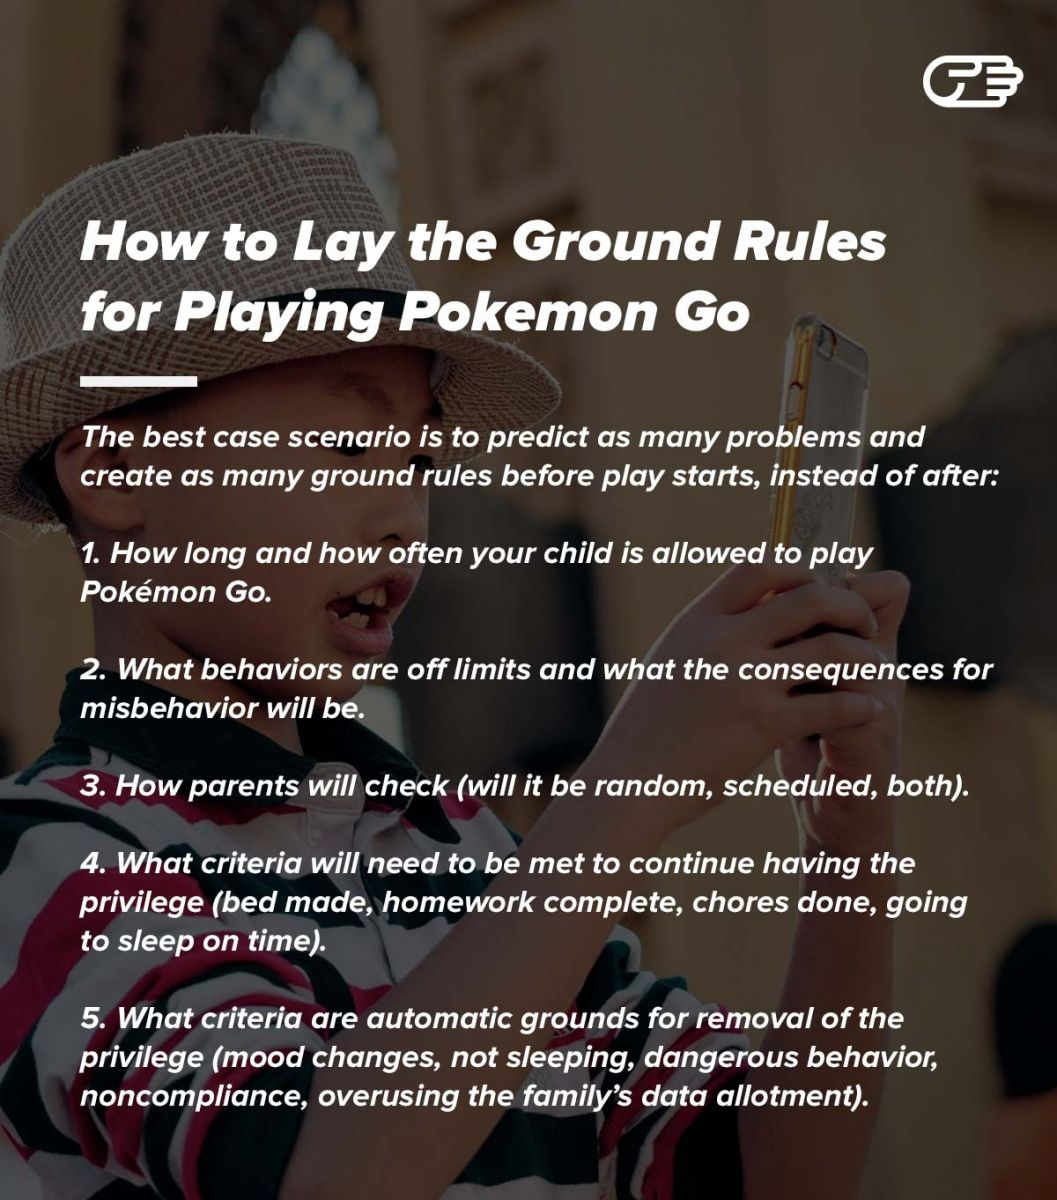 How to Lay the Ground Rules for Playing Pokemon Go